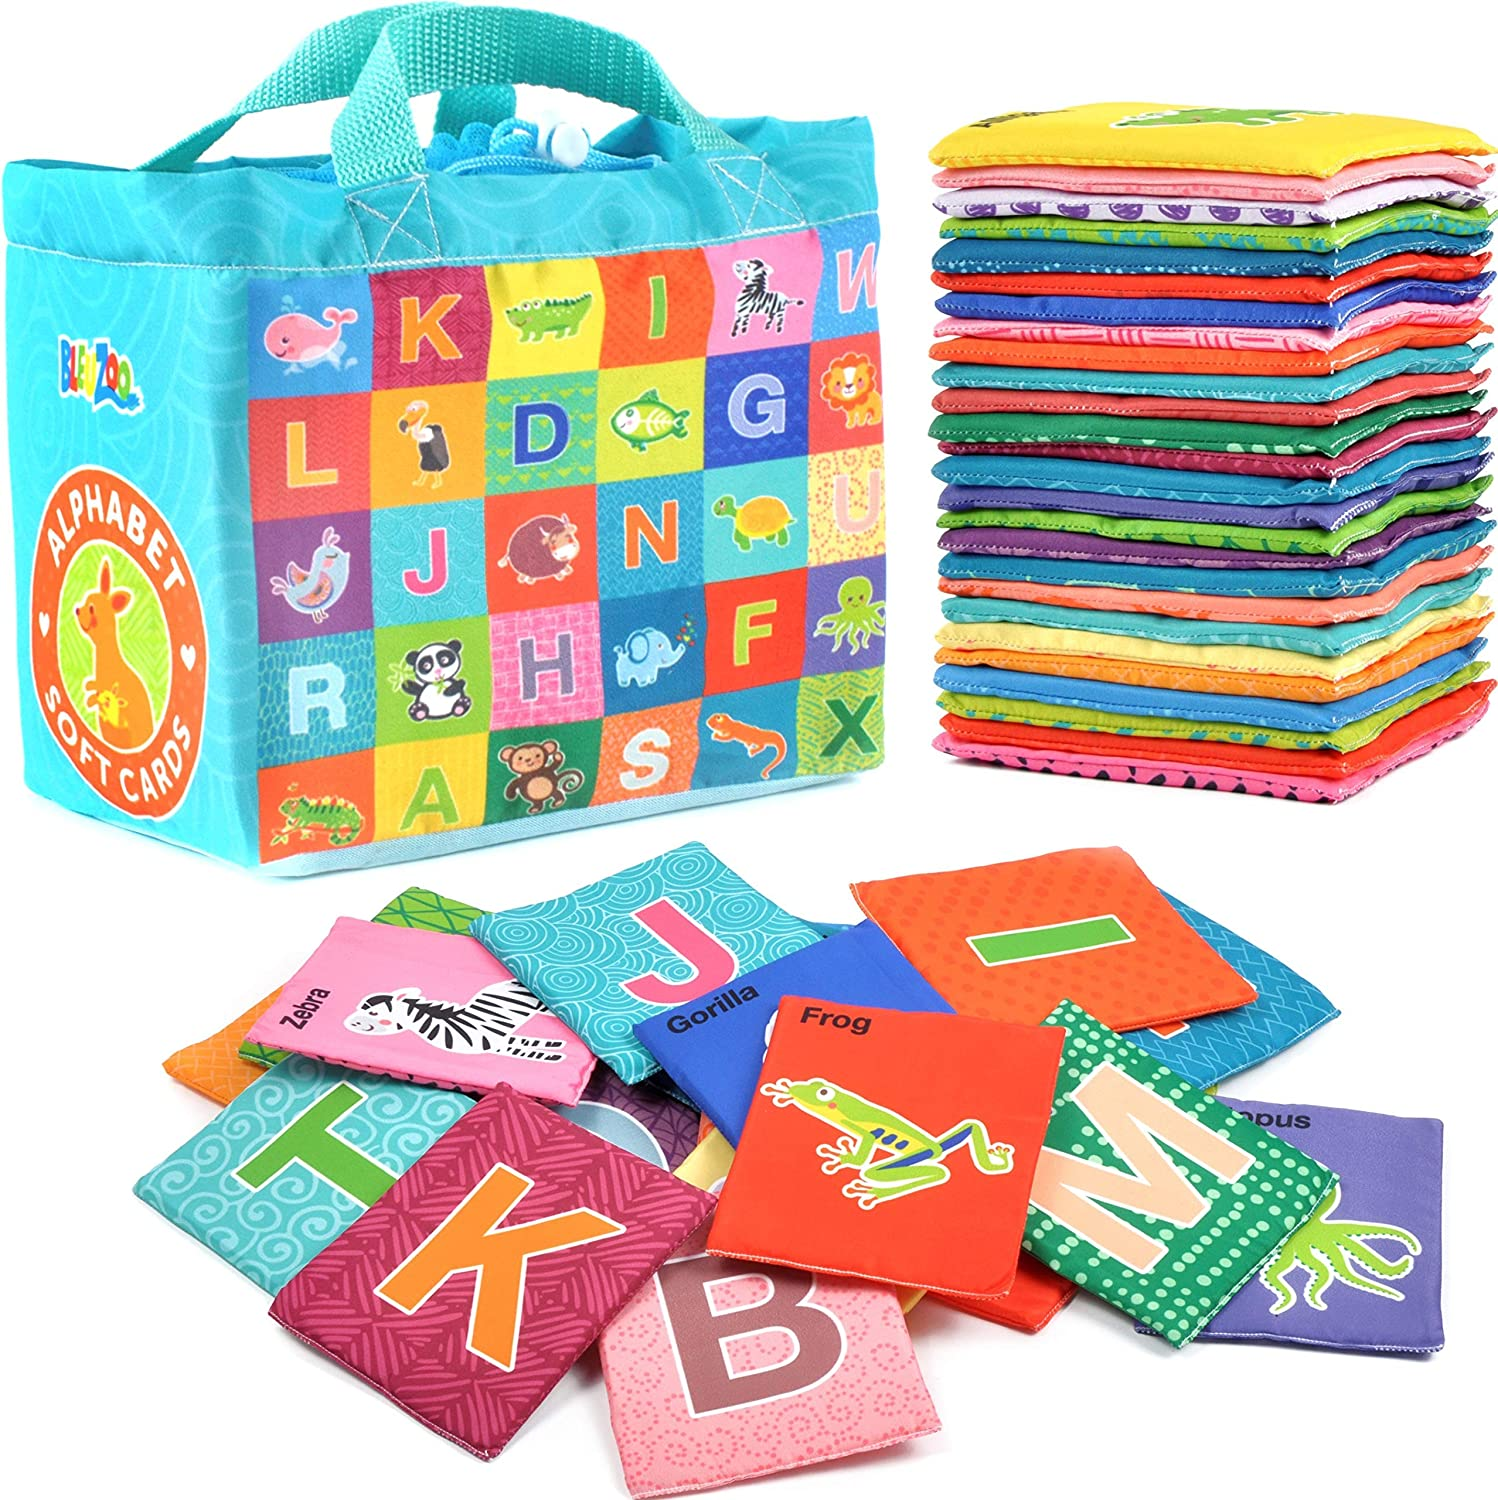 BleuZoo Soft Alphabet Cards - Educational Preschool Early Learning ABC Letters Baby Flash Cards Classroom Montessori Teaching Toy for Kids Toddlers - 26 Letters & Cloth Storage Bag